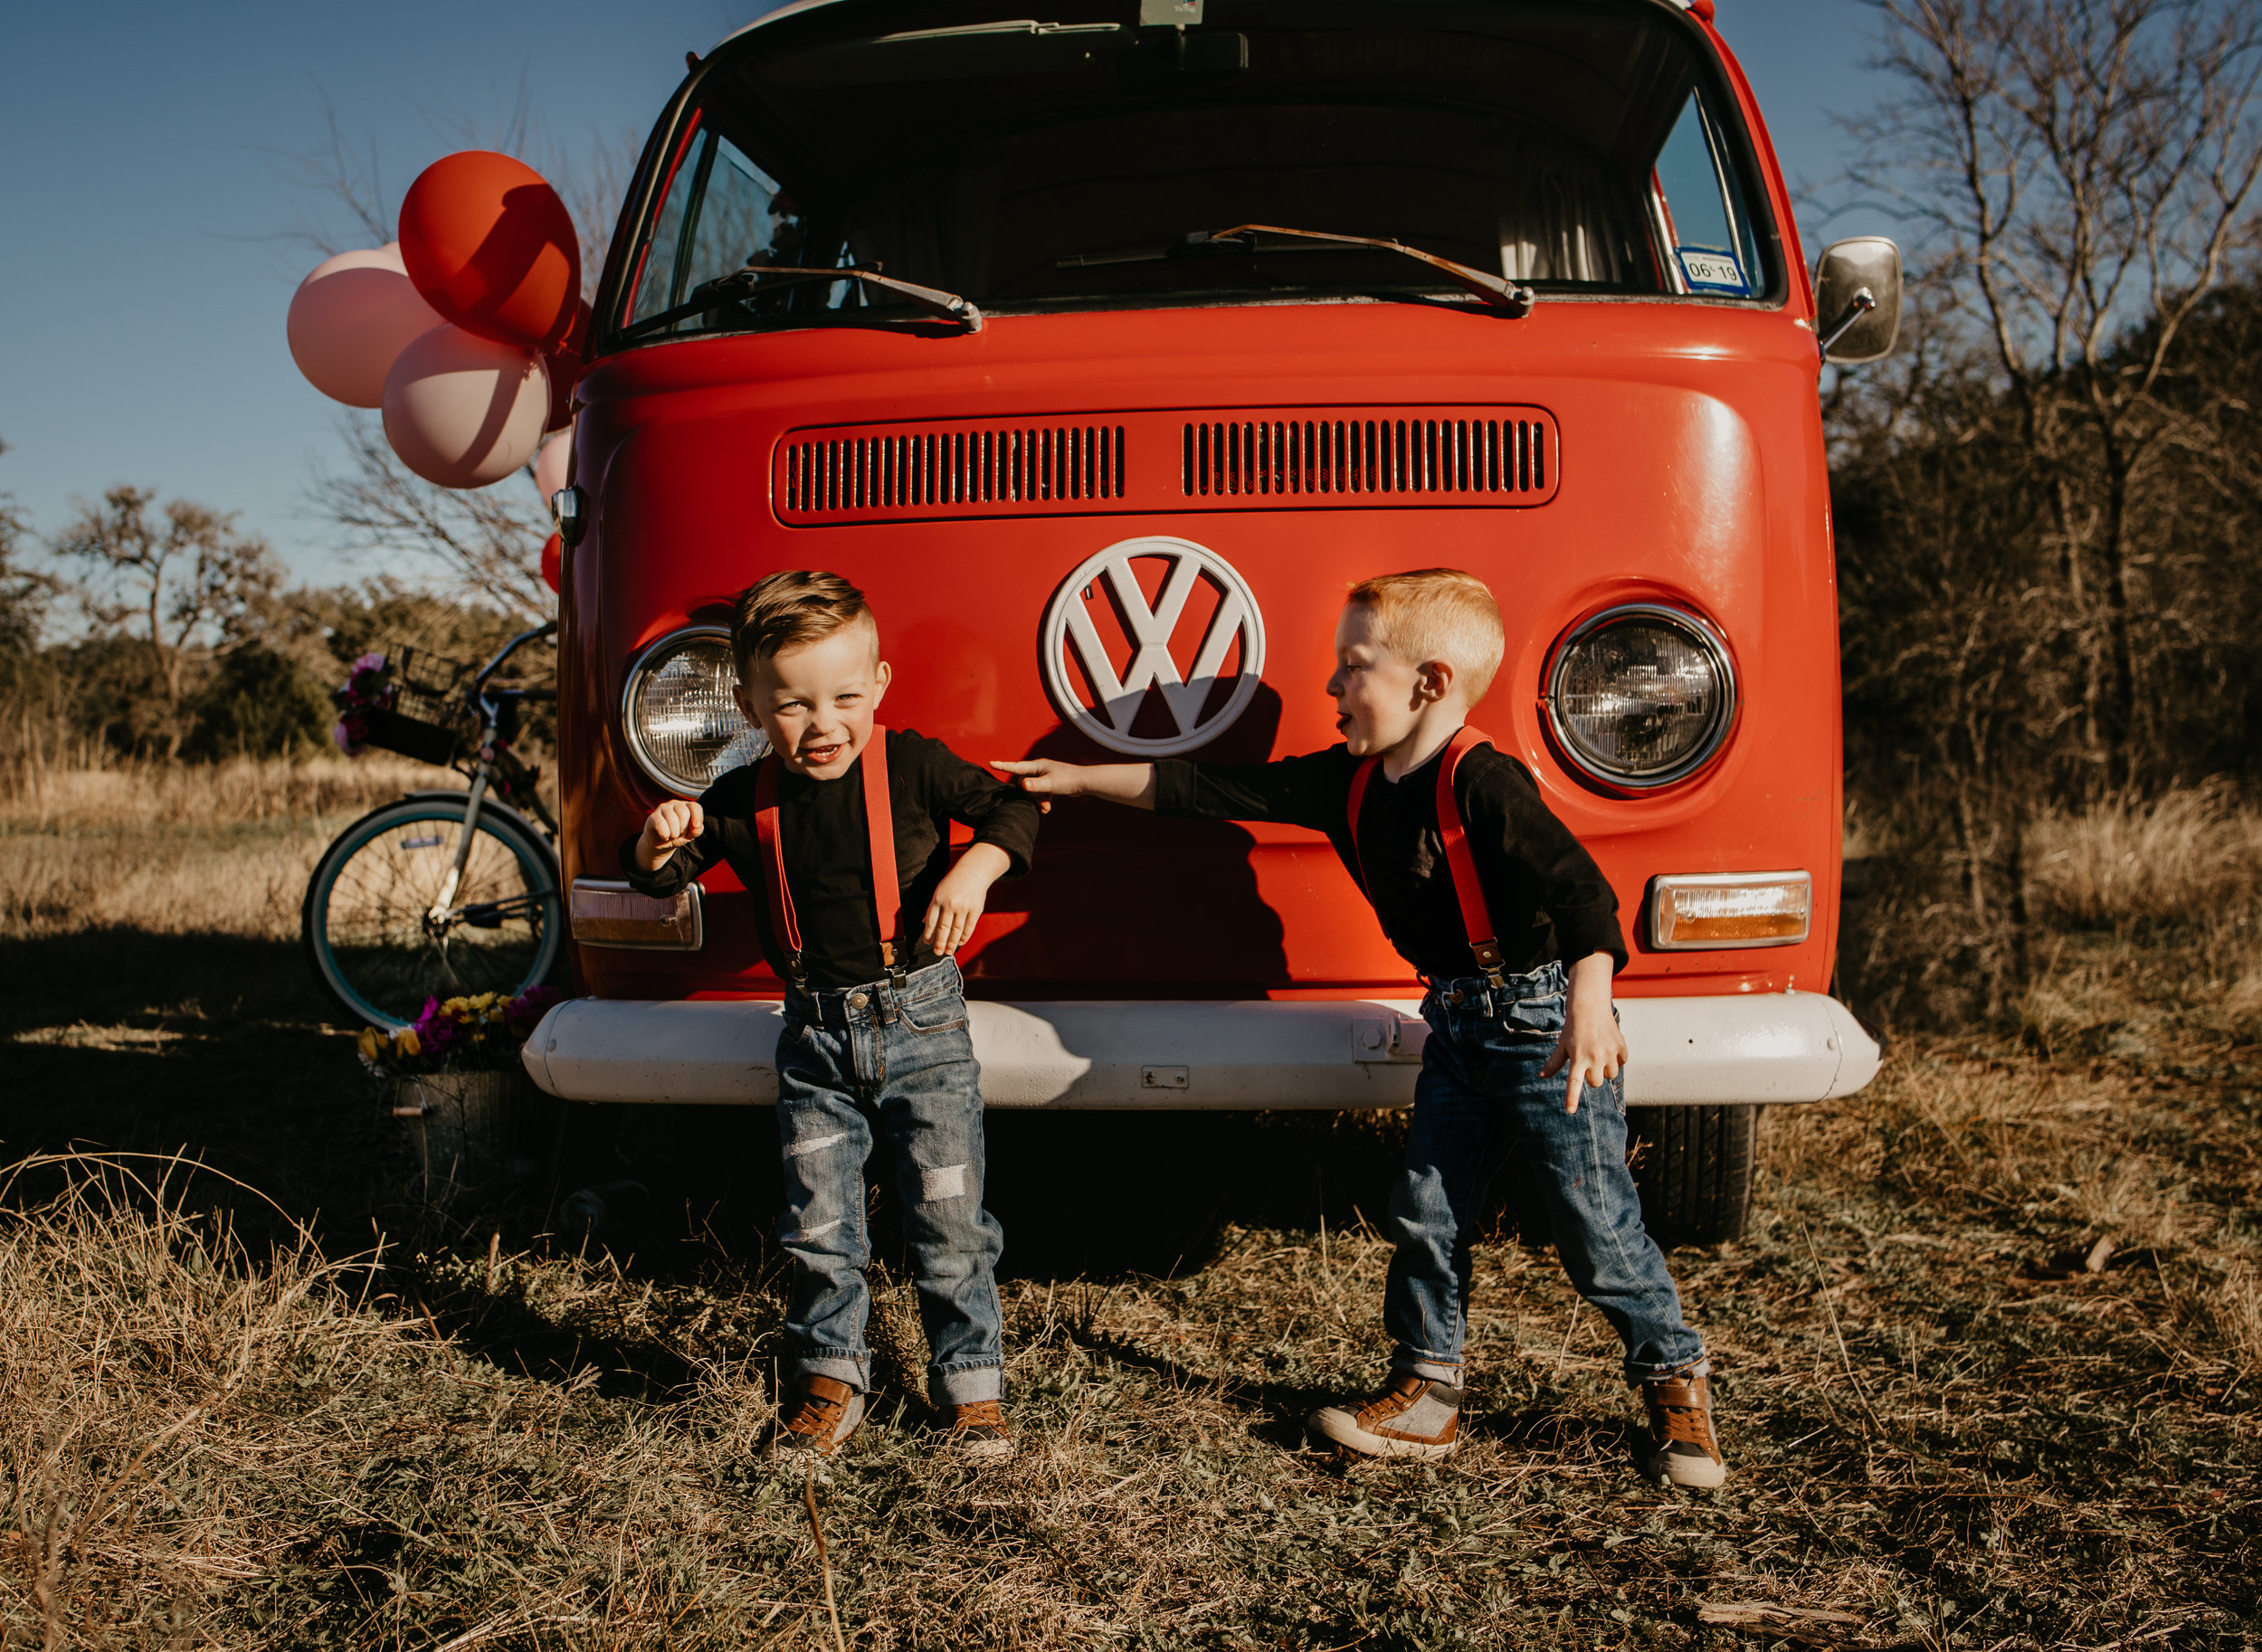 vw bus rental photo shoot-4.jpg